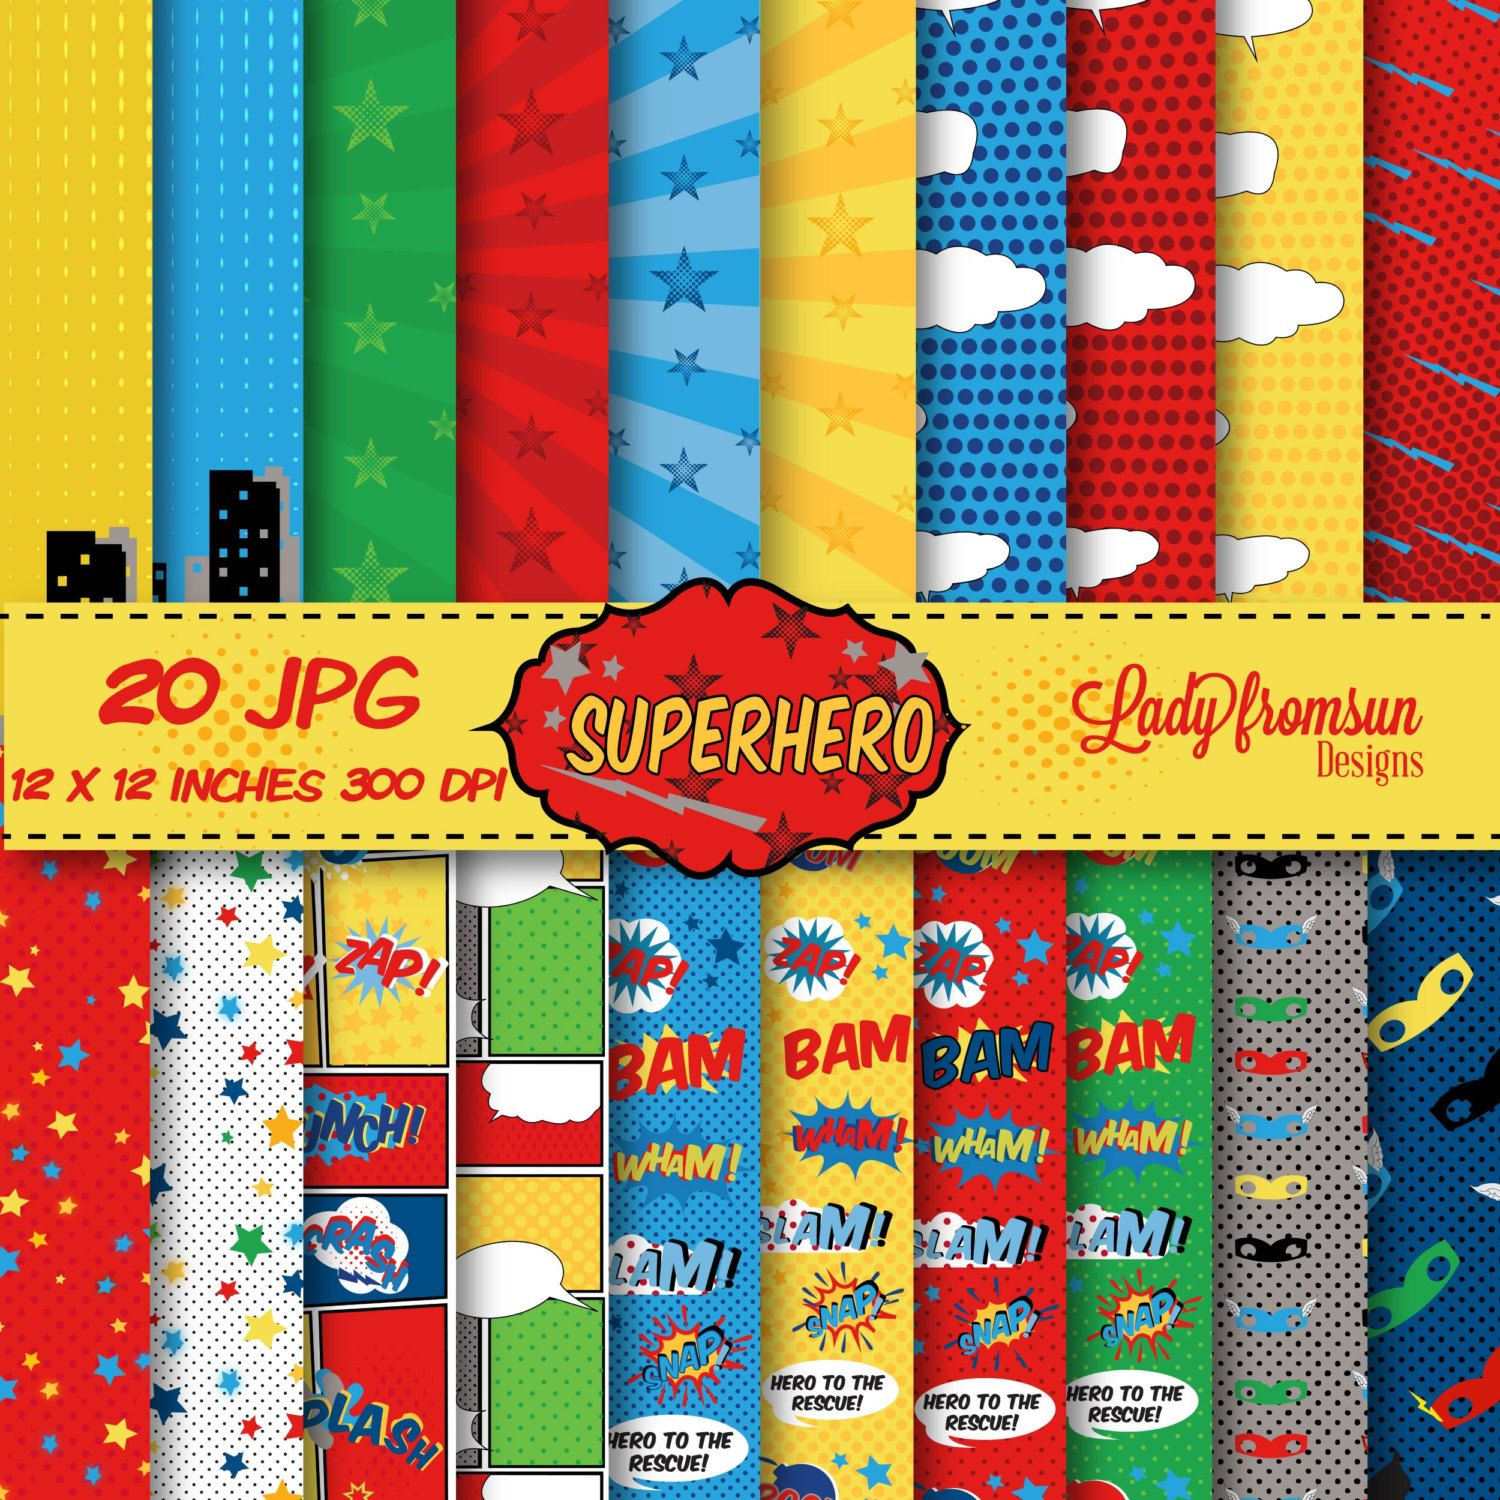 How to scrapbook words - Superhero Digital Paper Pack Comic Book Pages Action Words Comic Sound Effects Scrapbook Paper And Backgrounds Commercial Personal Use